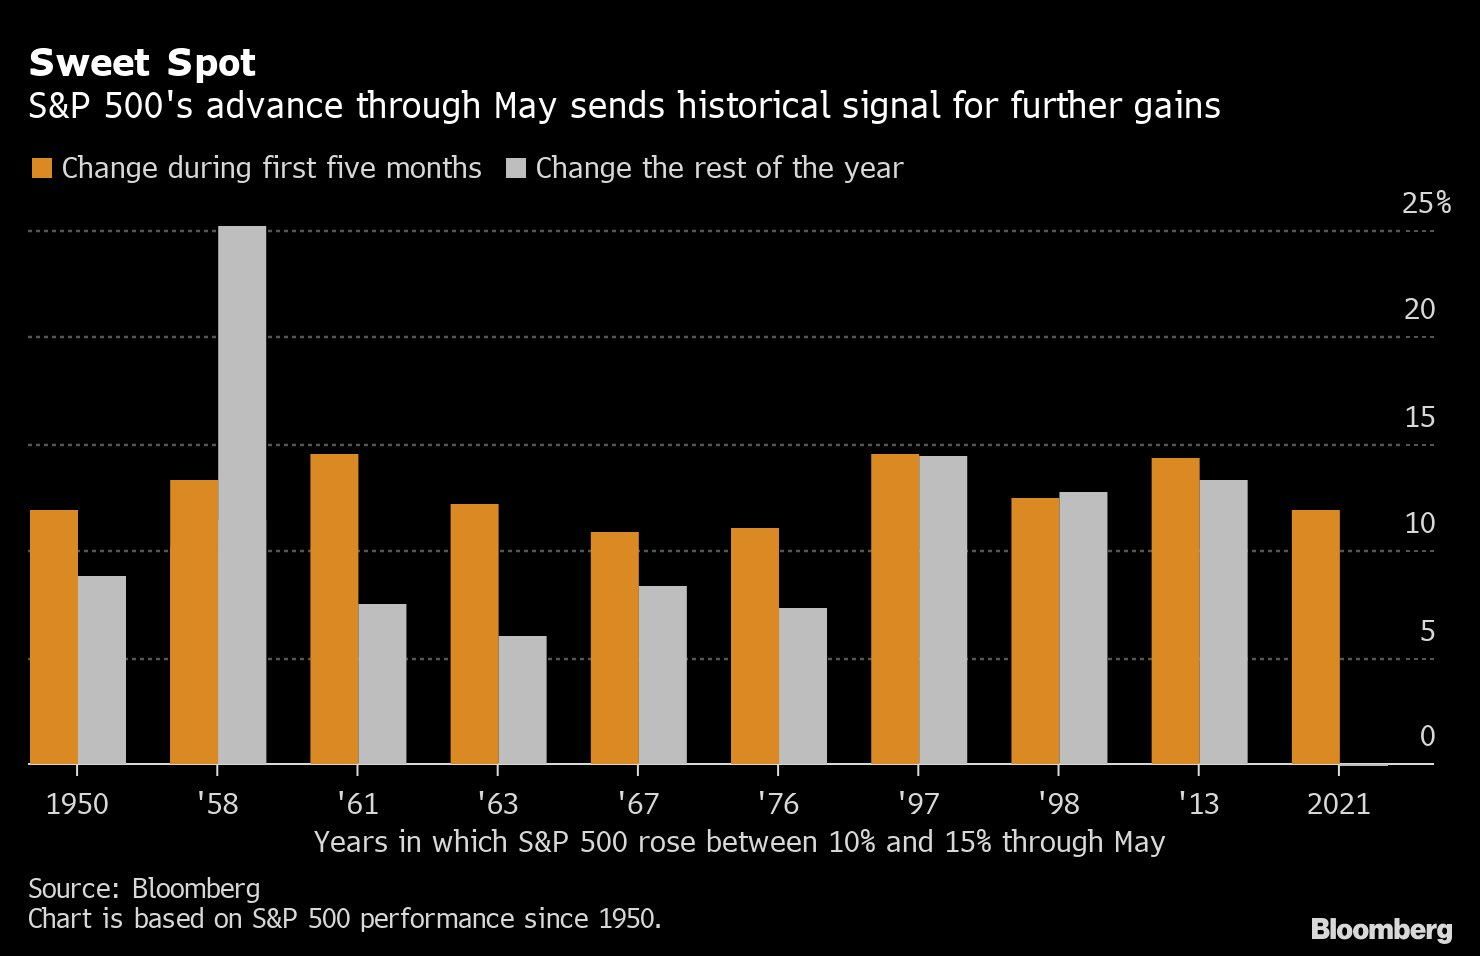 S&P 500: gains in the first months usually indicate further gains